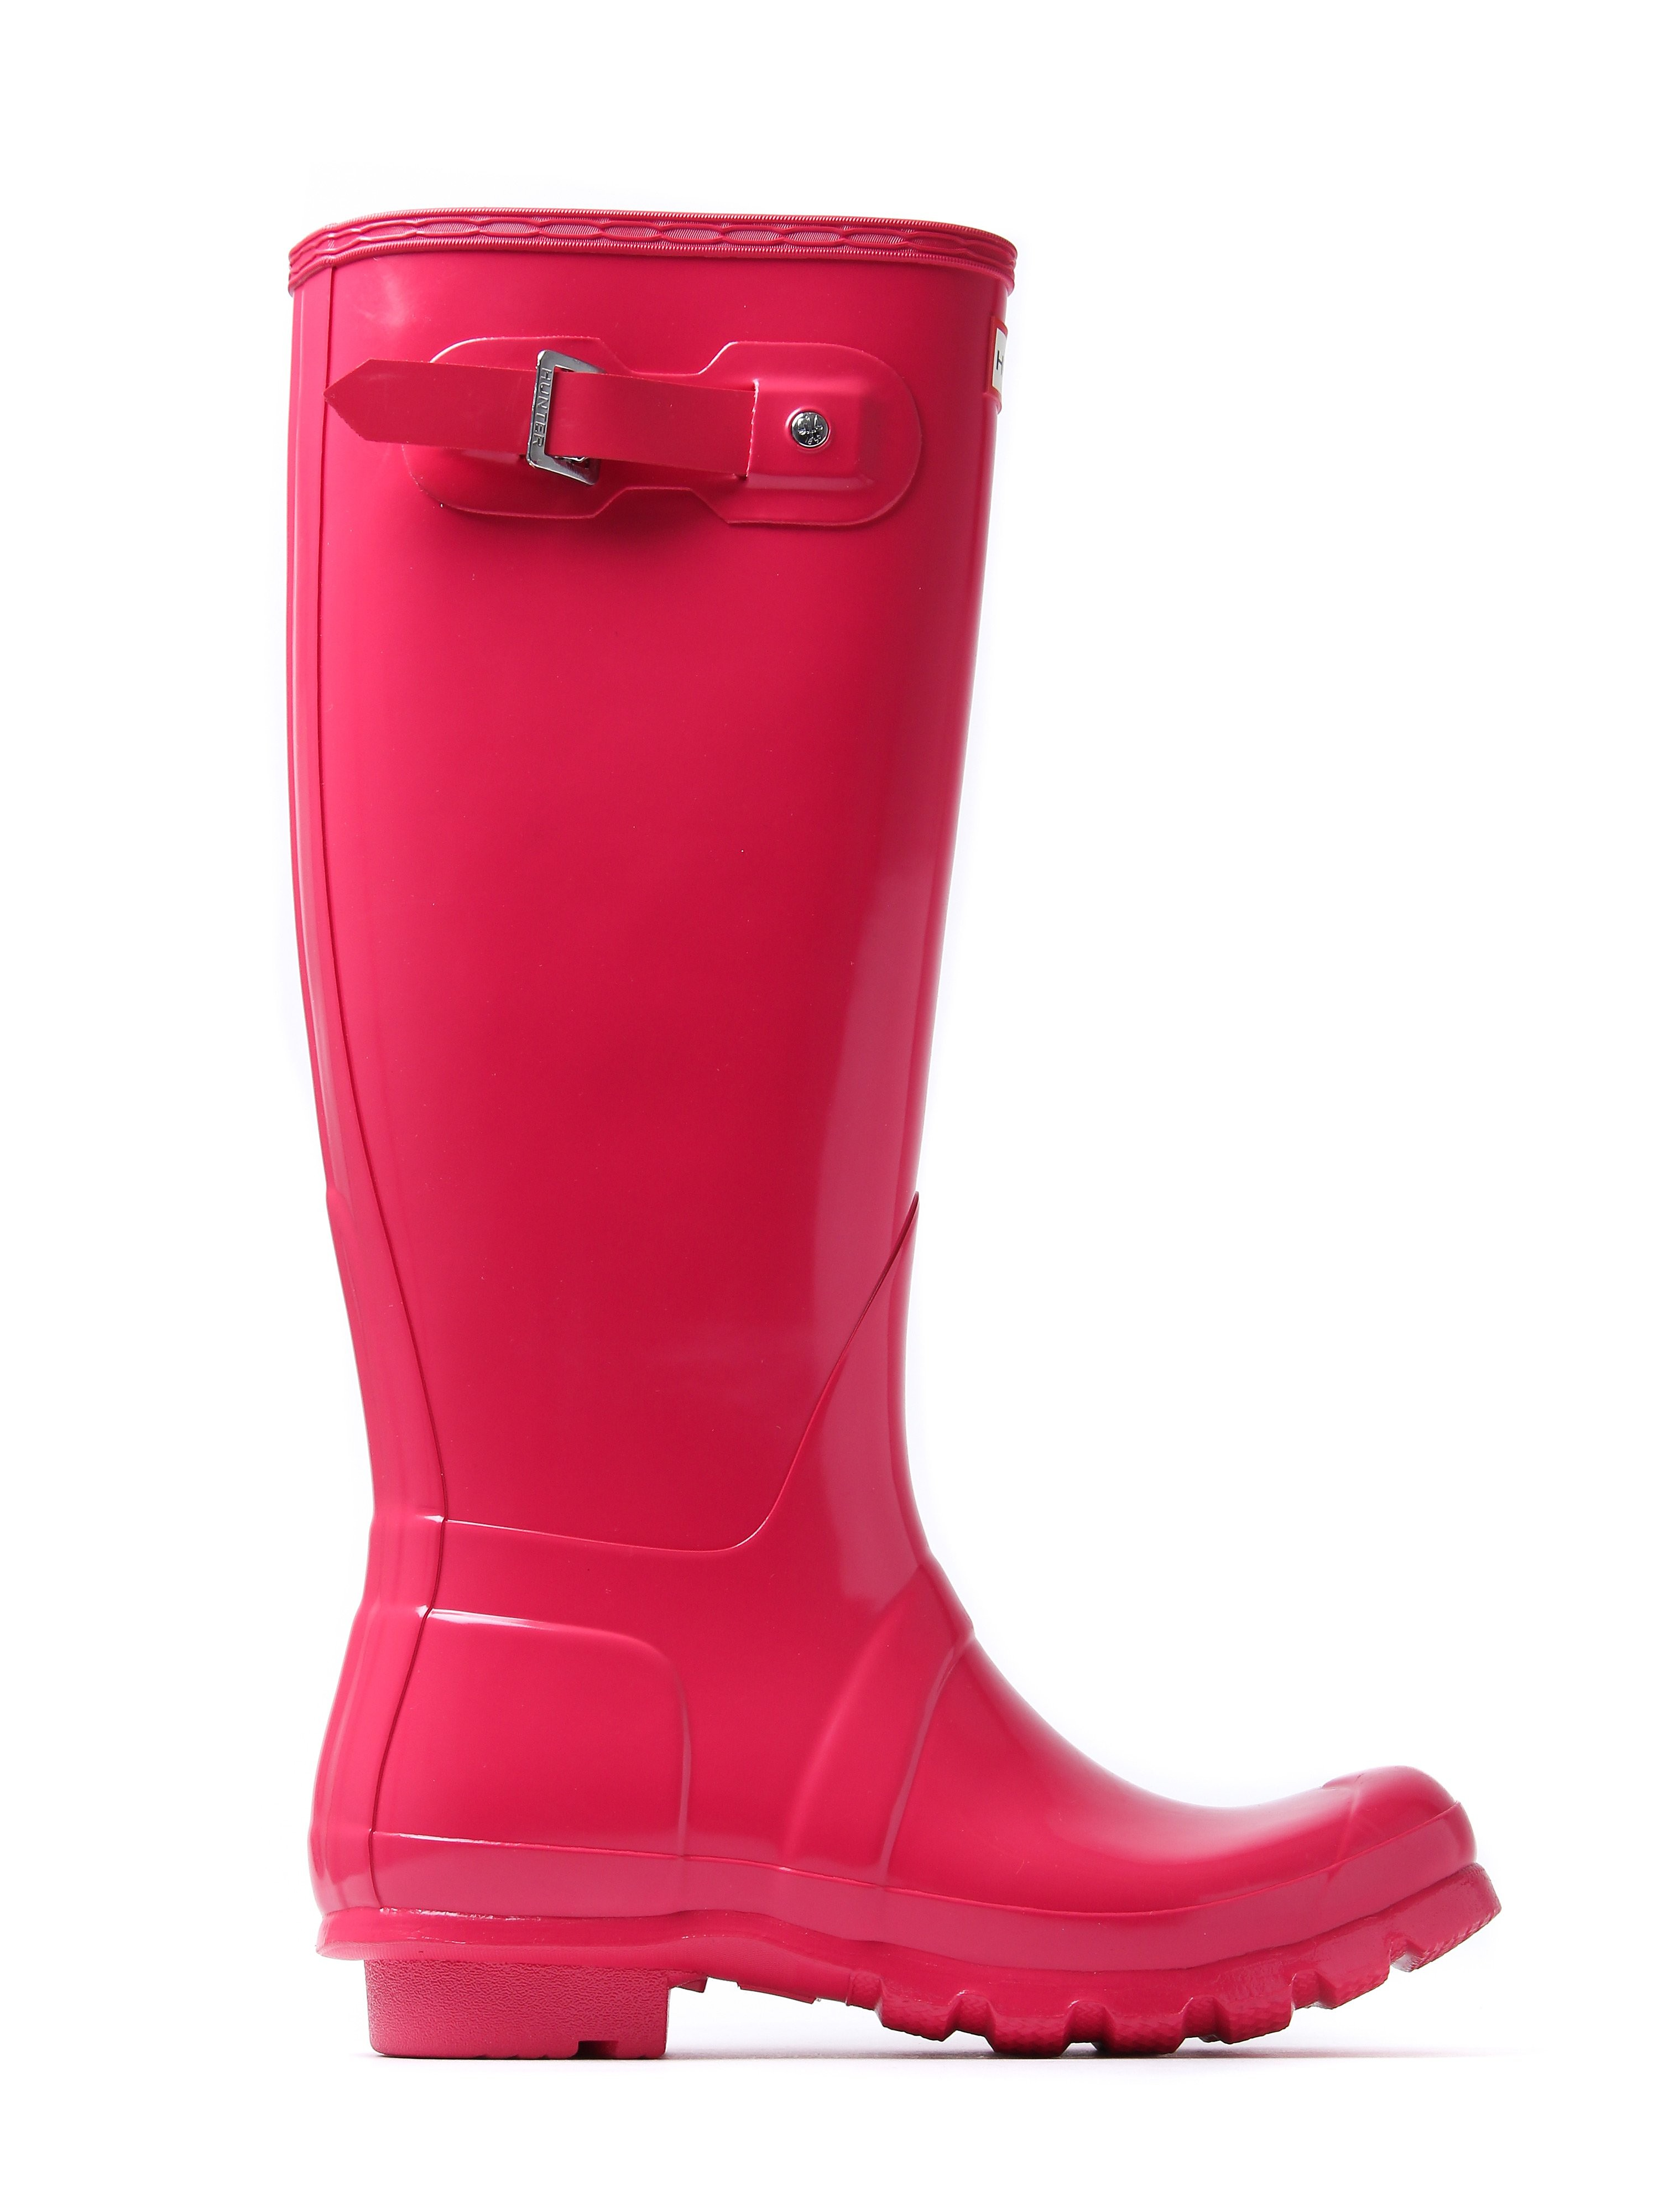 Hunter Wellies Women's Original Tall Wellington Boots - Bright Pink